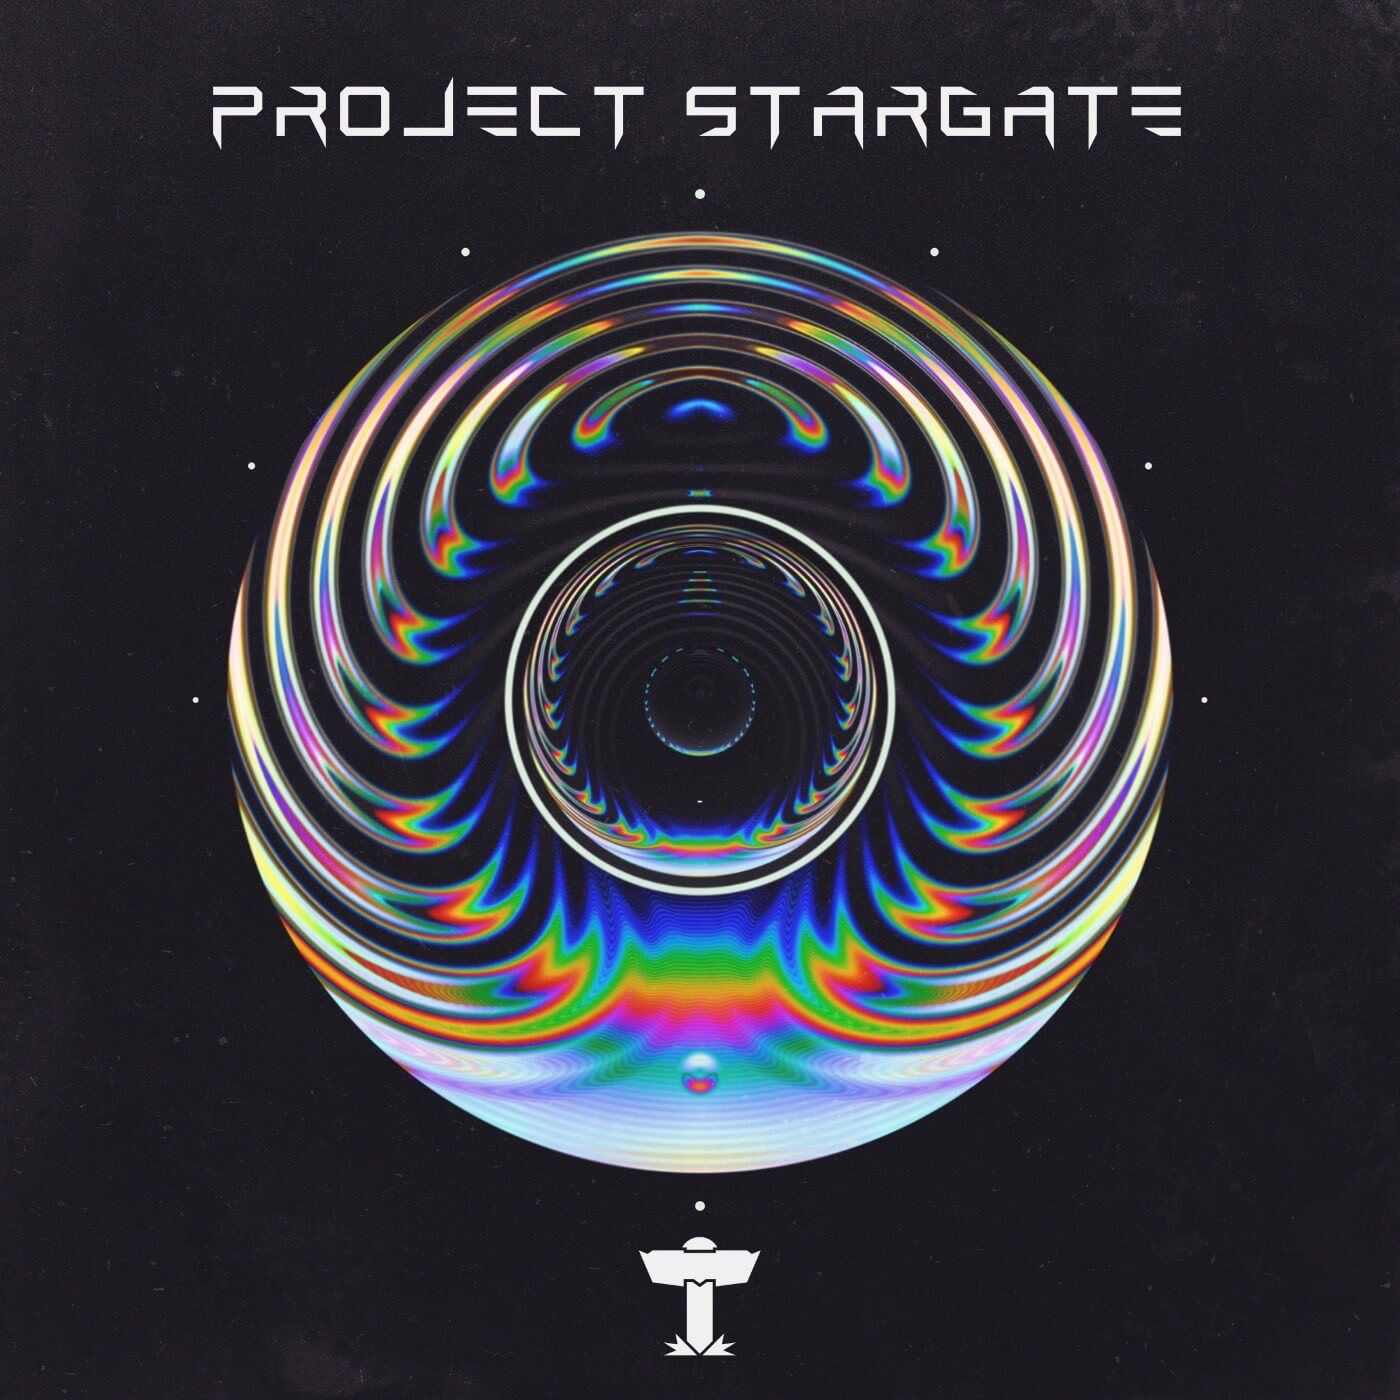 Telex-Project-Stargate-Electric-Hawk